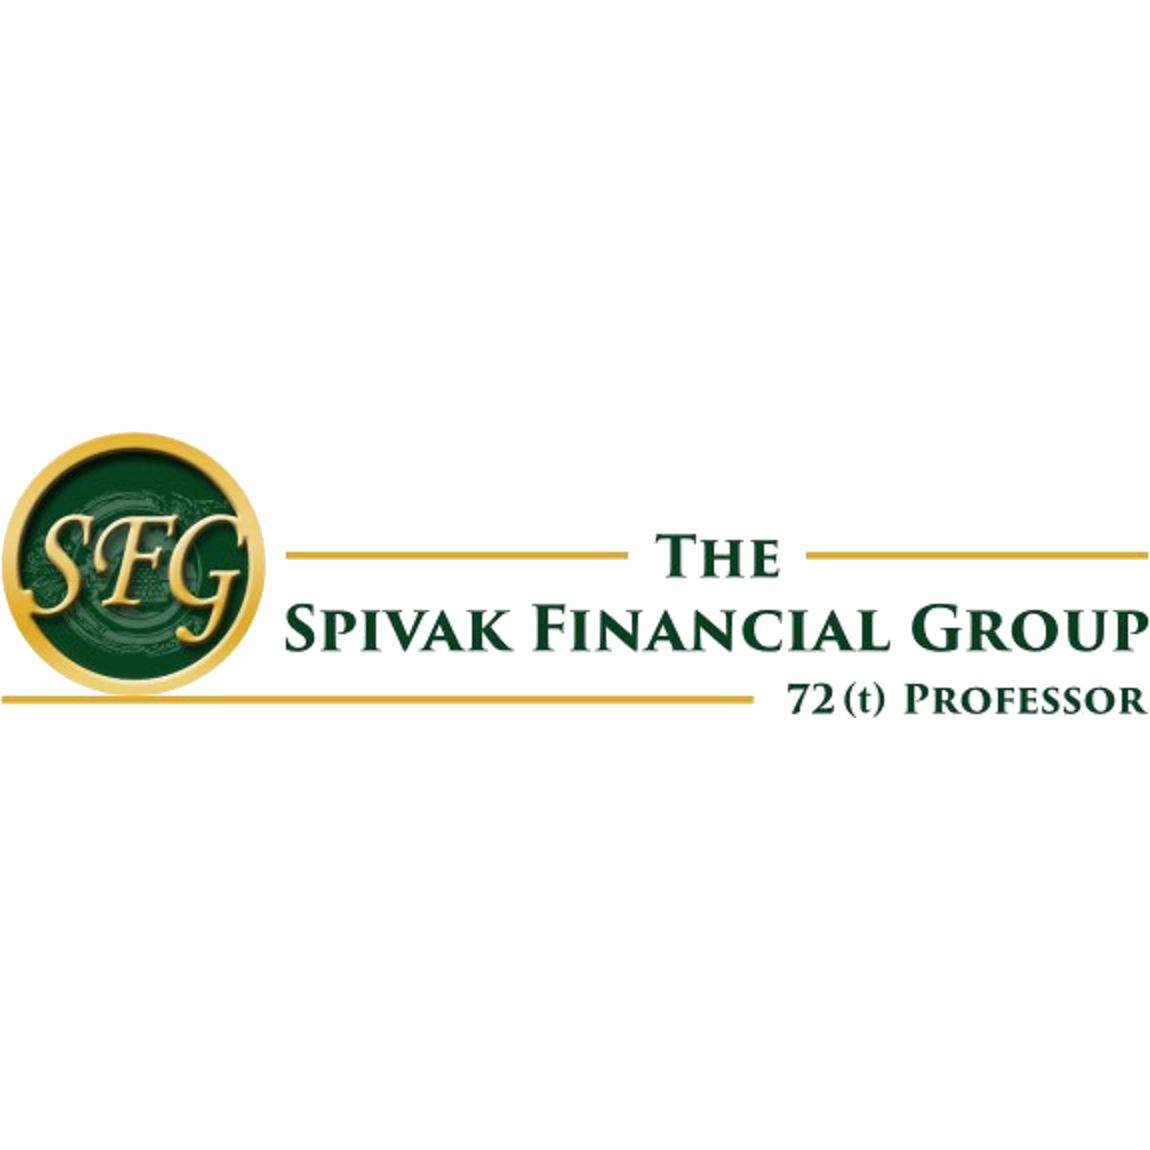 The Spivak Financial Group